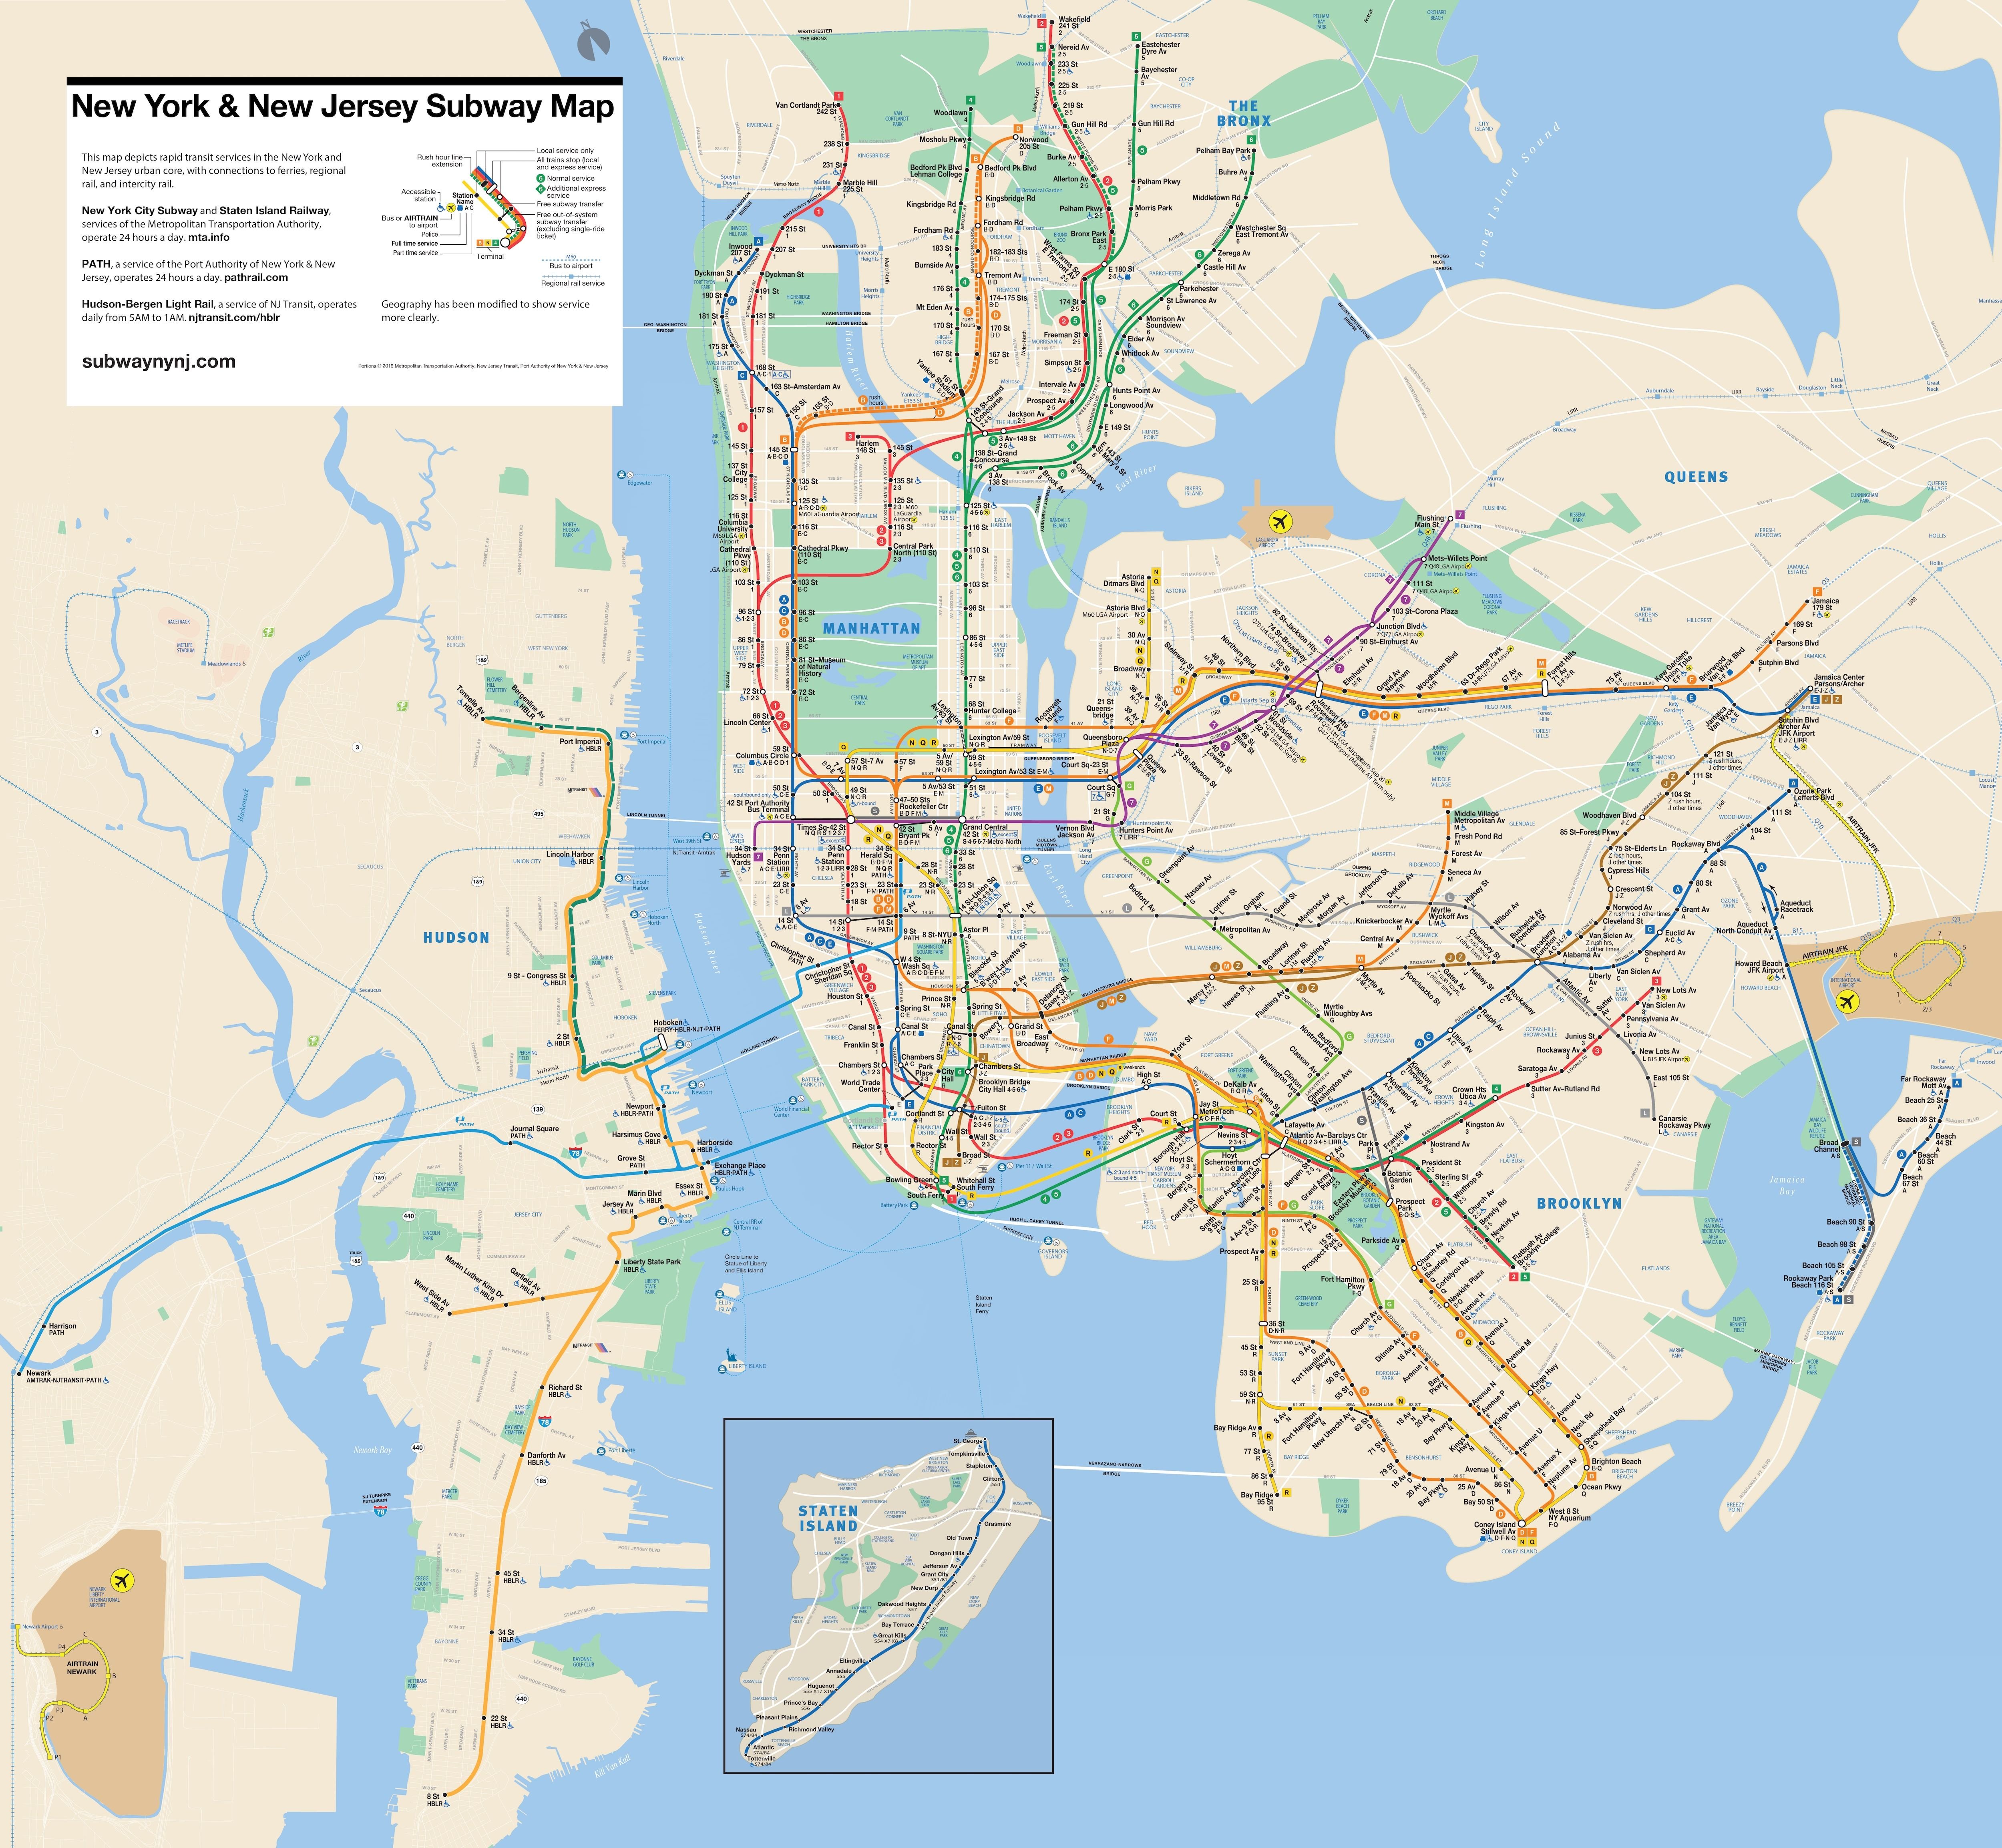 New York & New Jersey Subway Map | Map of new york, Nyc ...